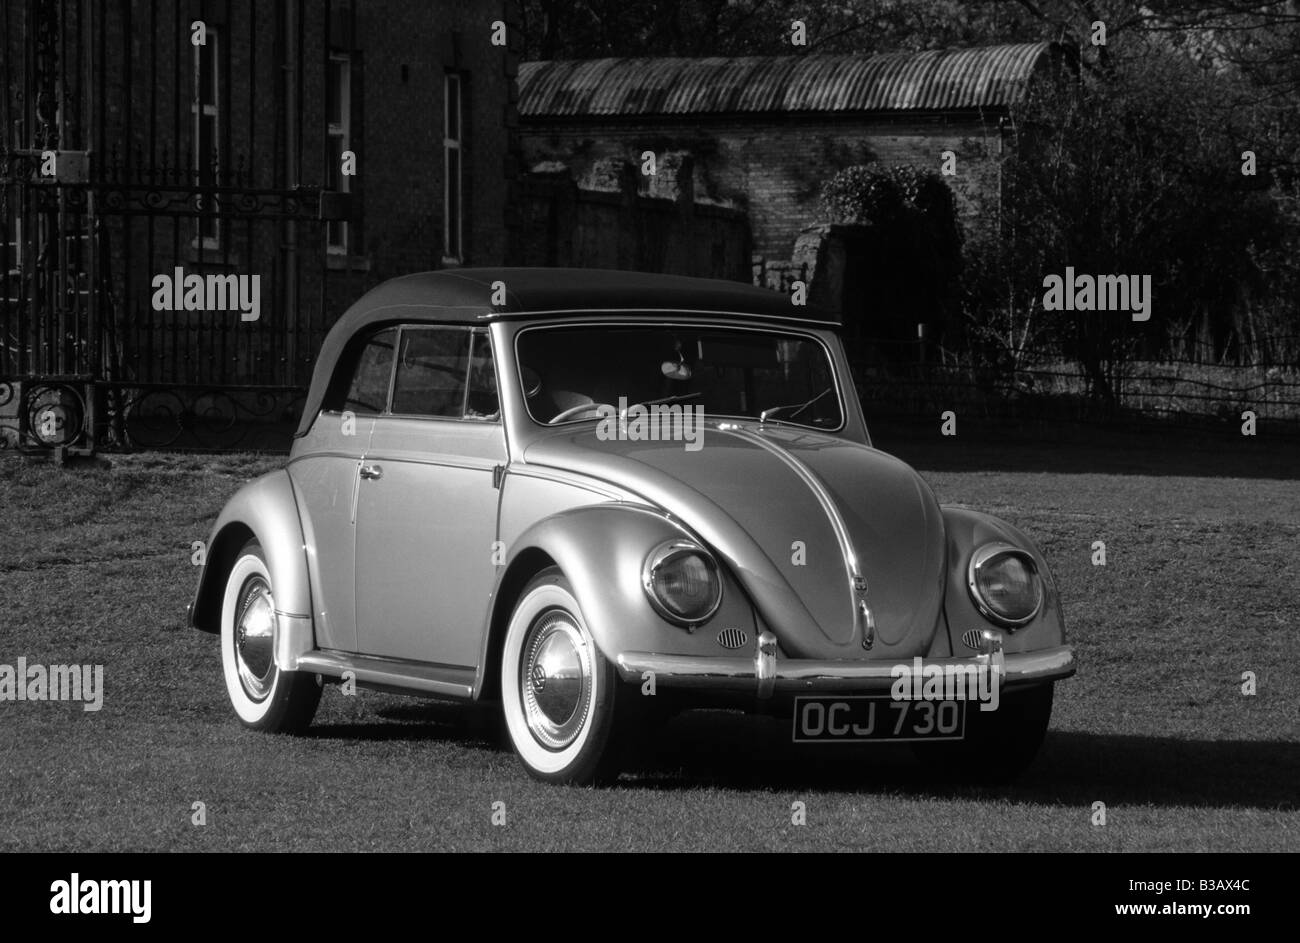 Volkswagen Beetle Cabriolet of 1956. Stock Photo